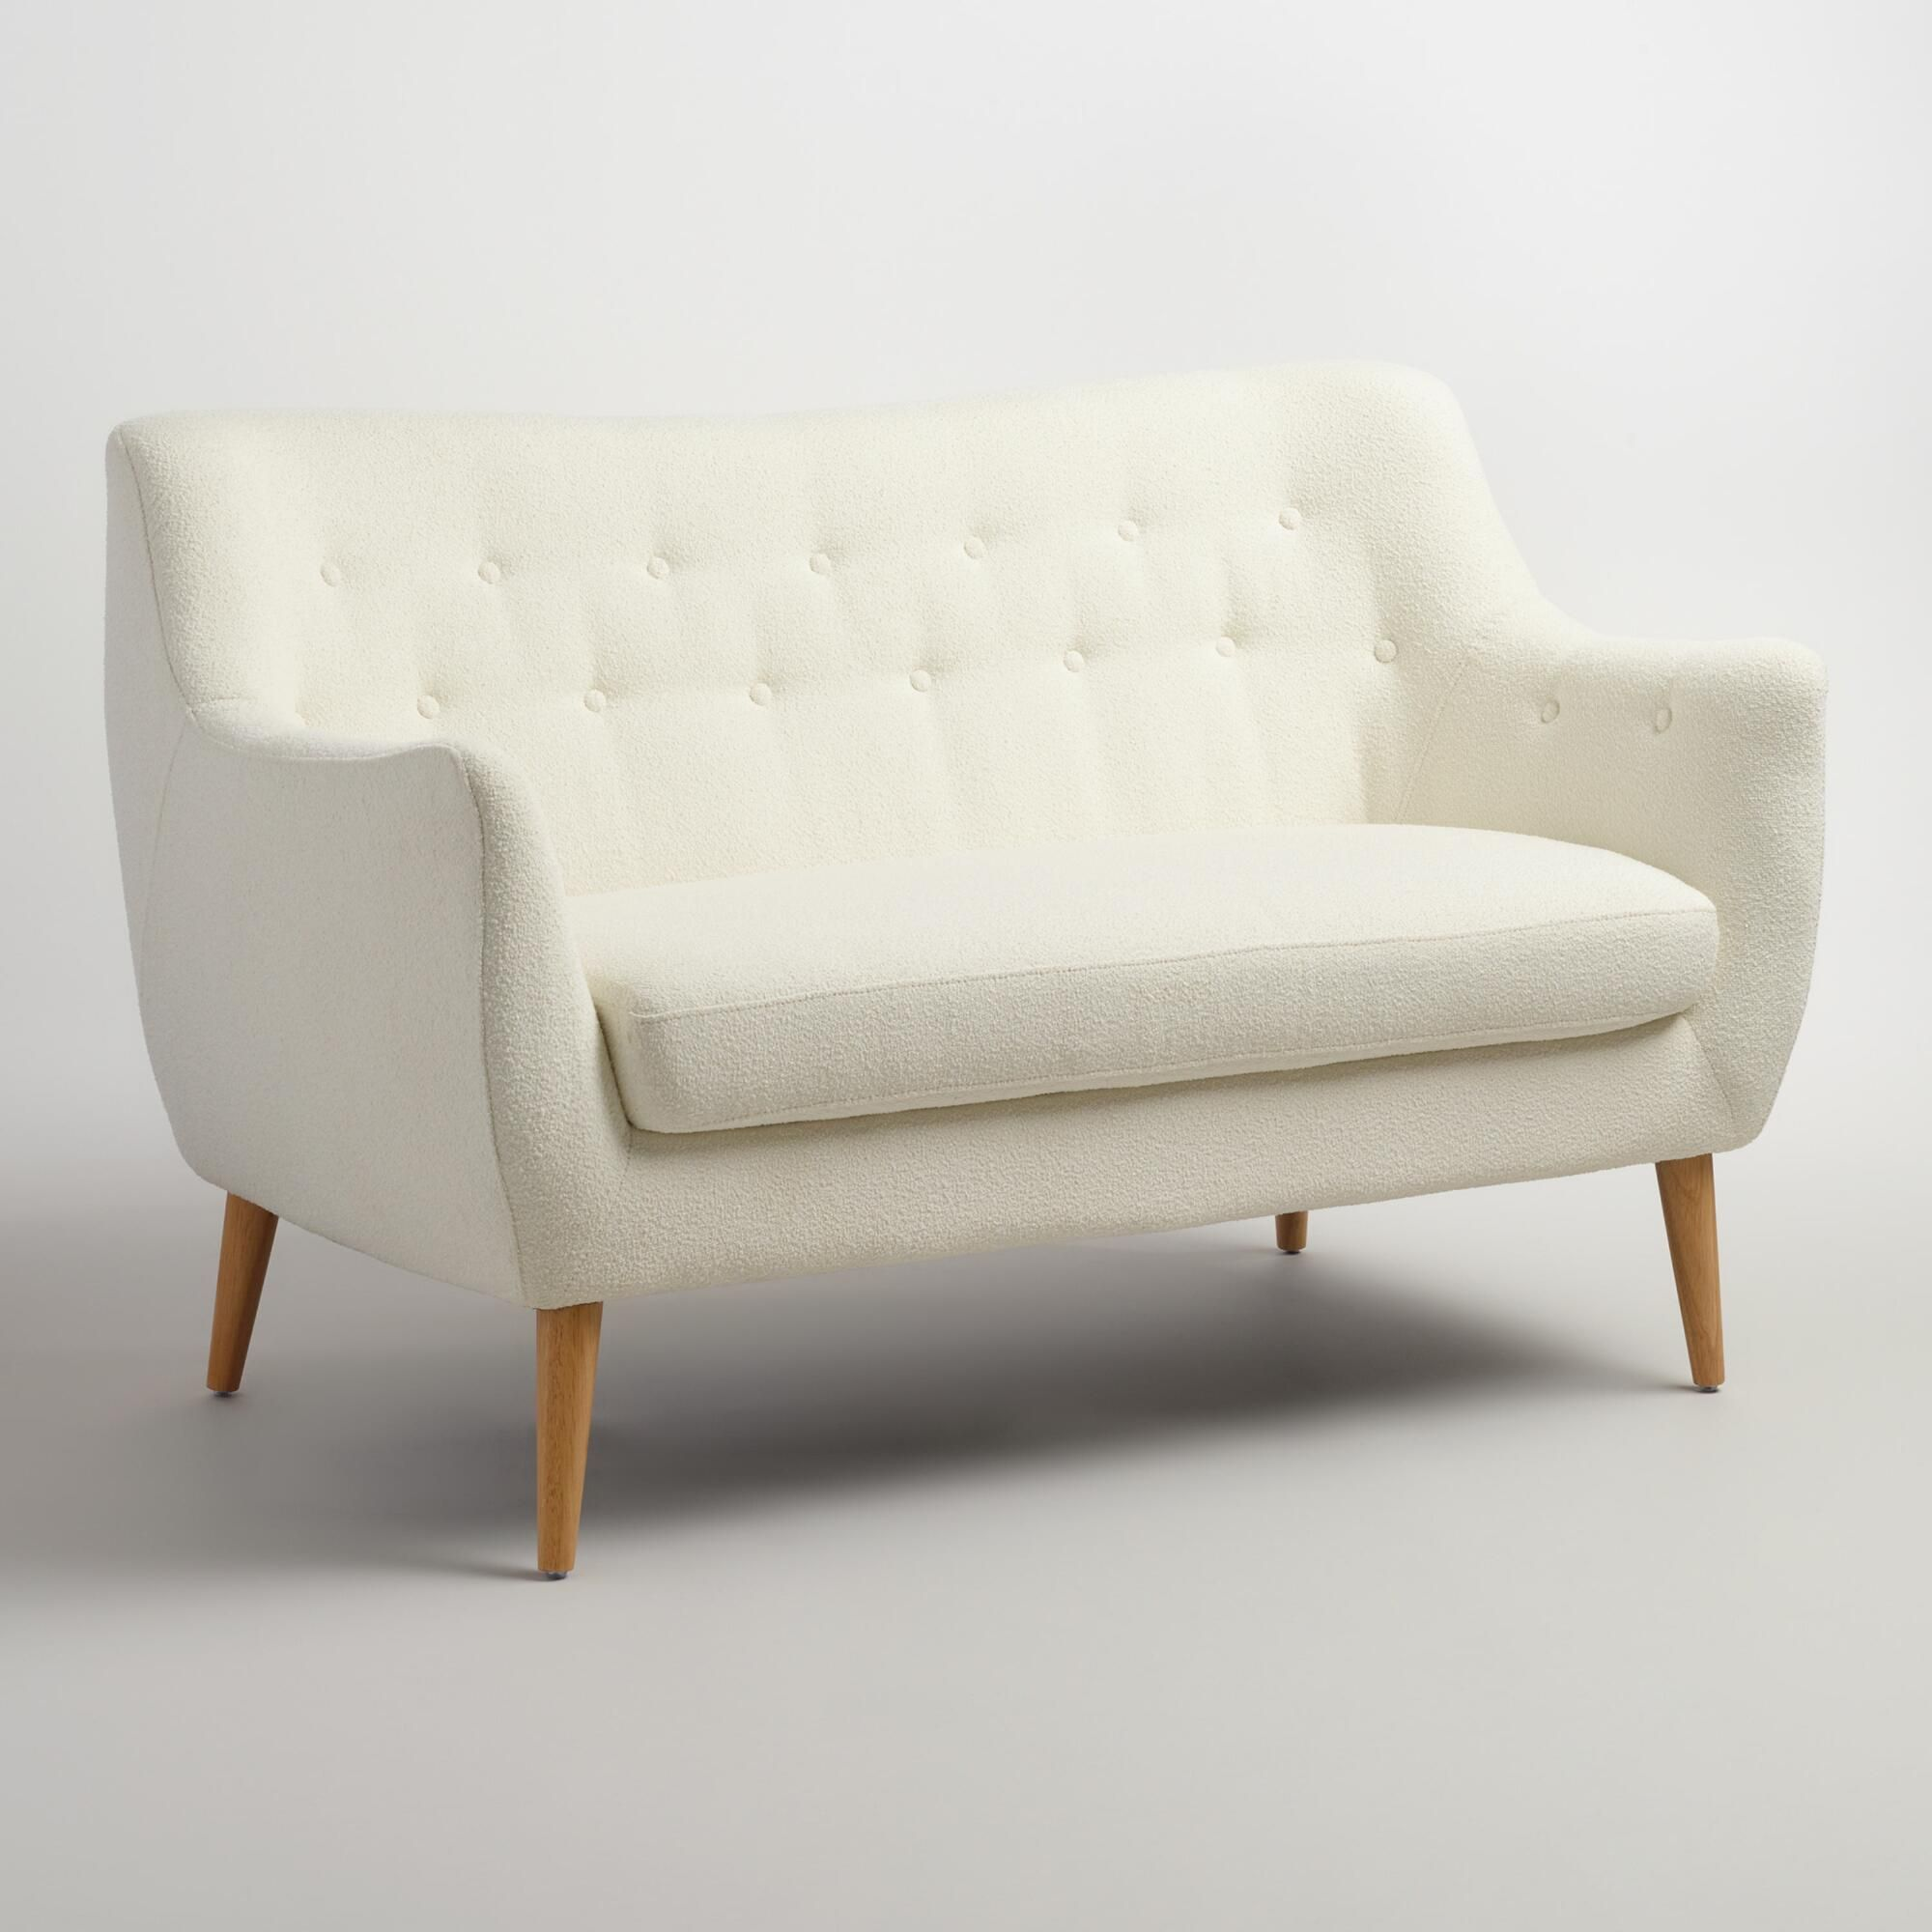 Our Easy To Assemble Sofa Boasts A Definitively Mid Century Style Silhouette Flared Natural Finished Rubberwood Legs And Love Seat White Loveseat Sofa Styling